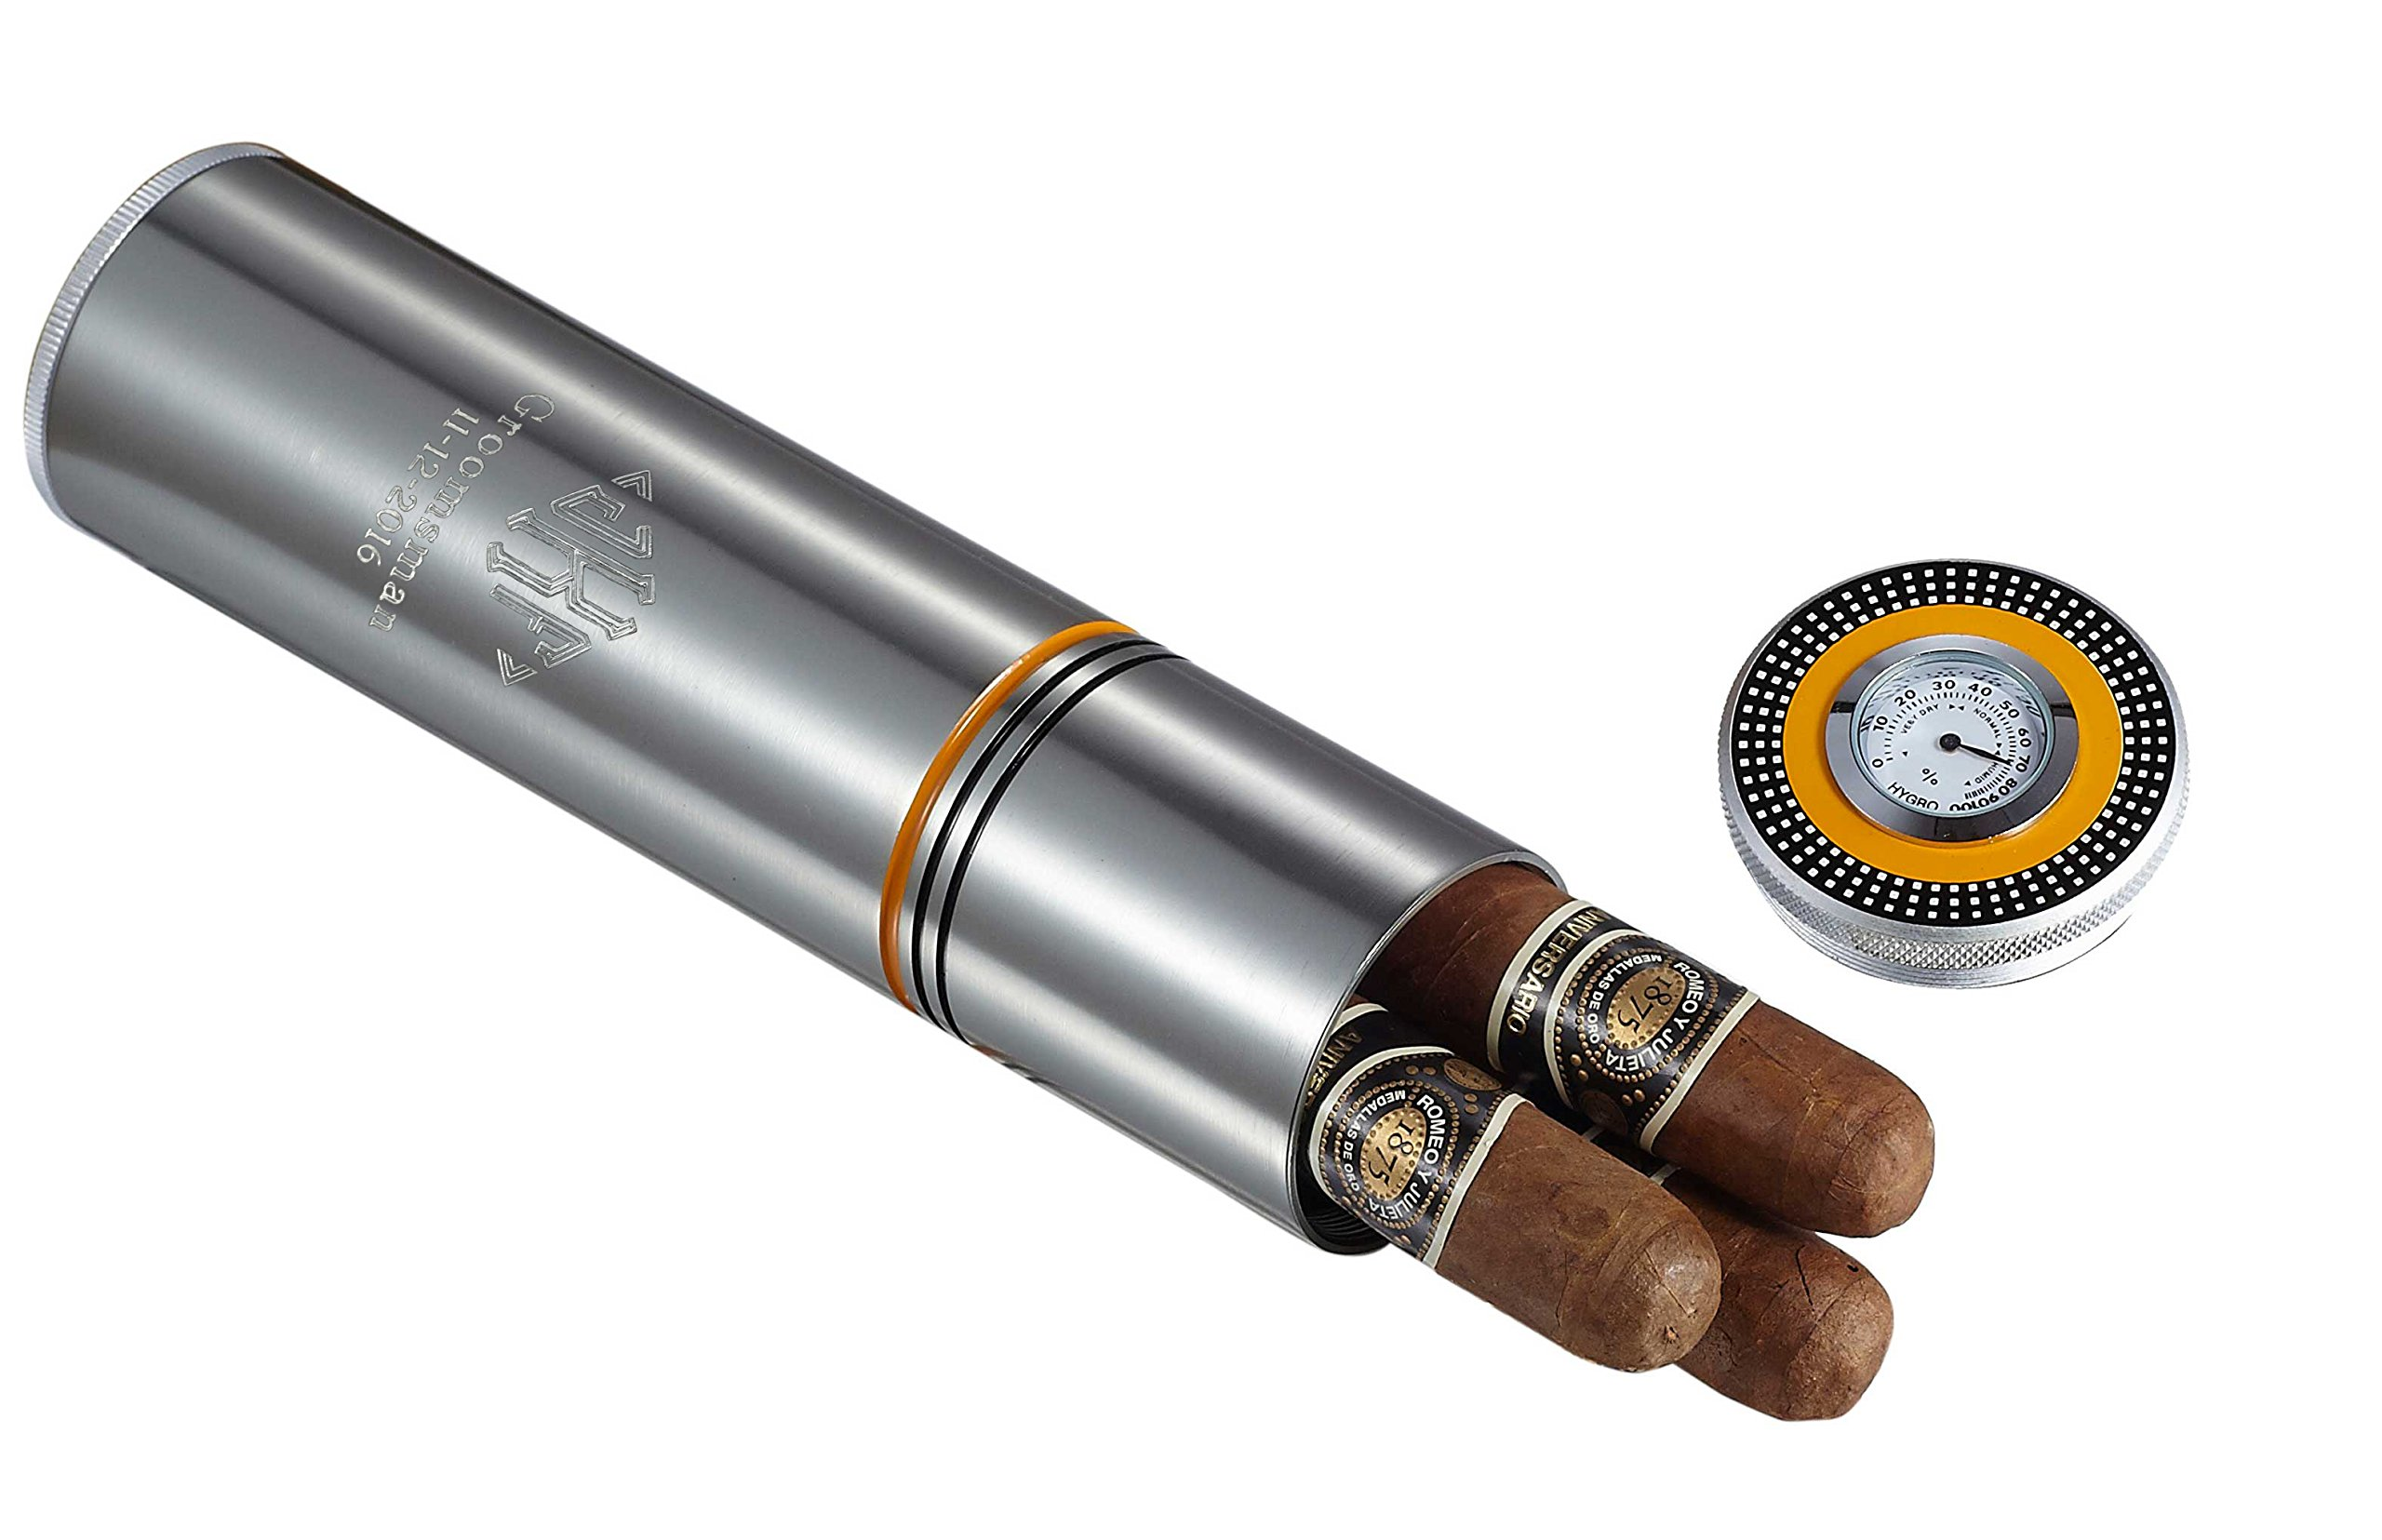 Personalized Stainless Steel Travel Humidor with Free Engraving